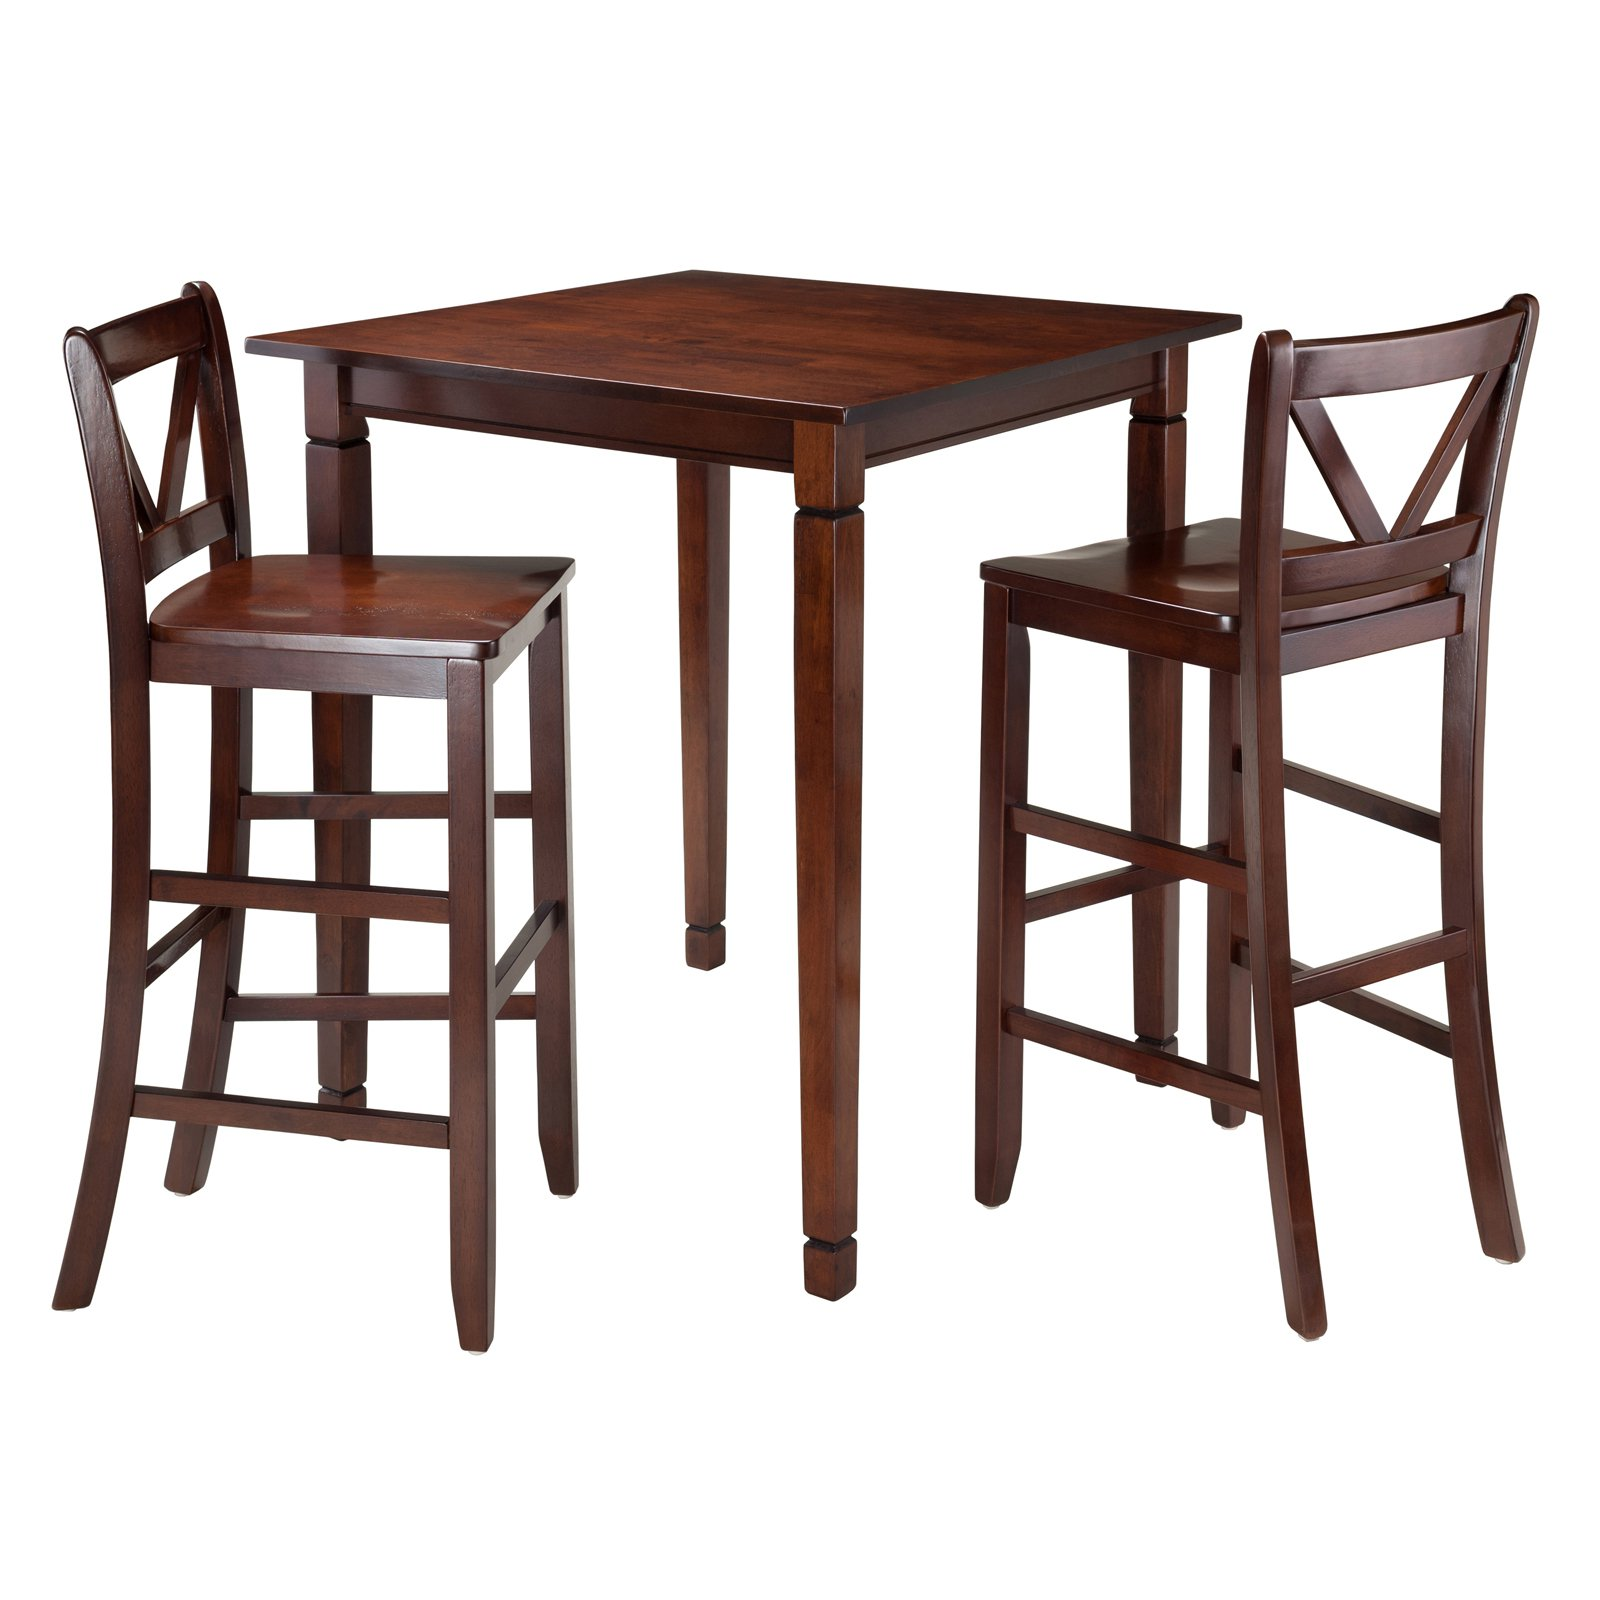 Kingsgate 3-Pc Dining Table with 2 Bar V-Back Chairs